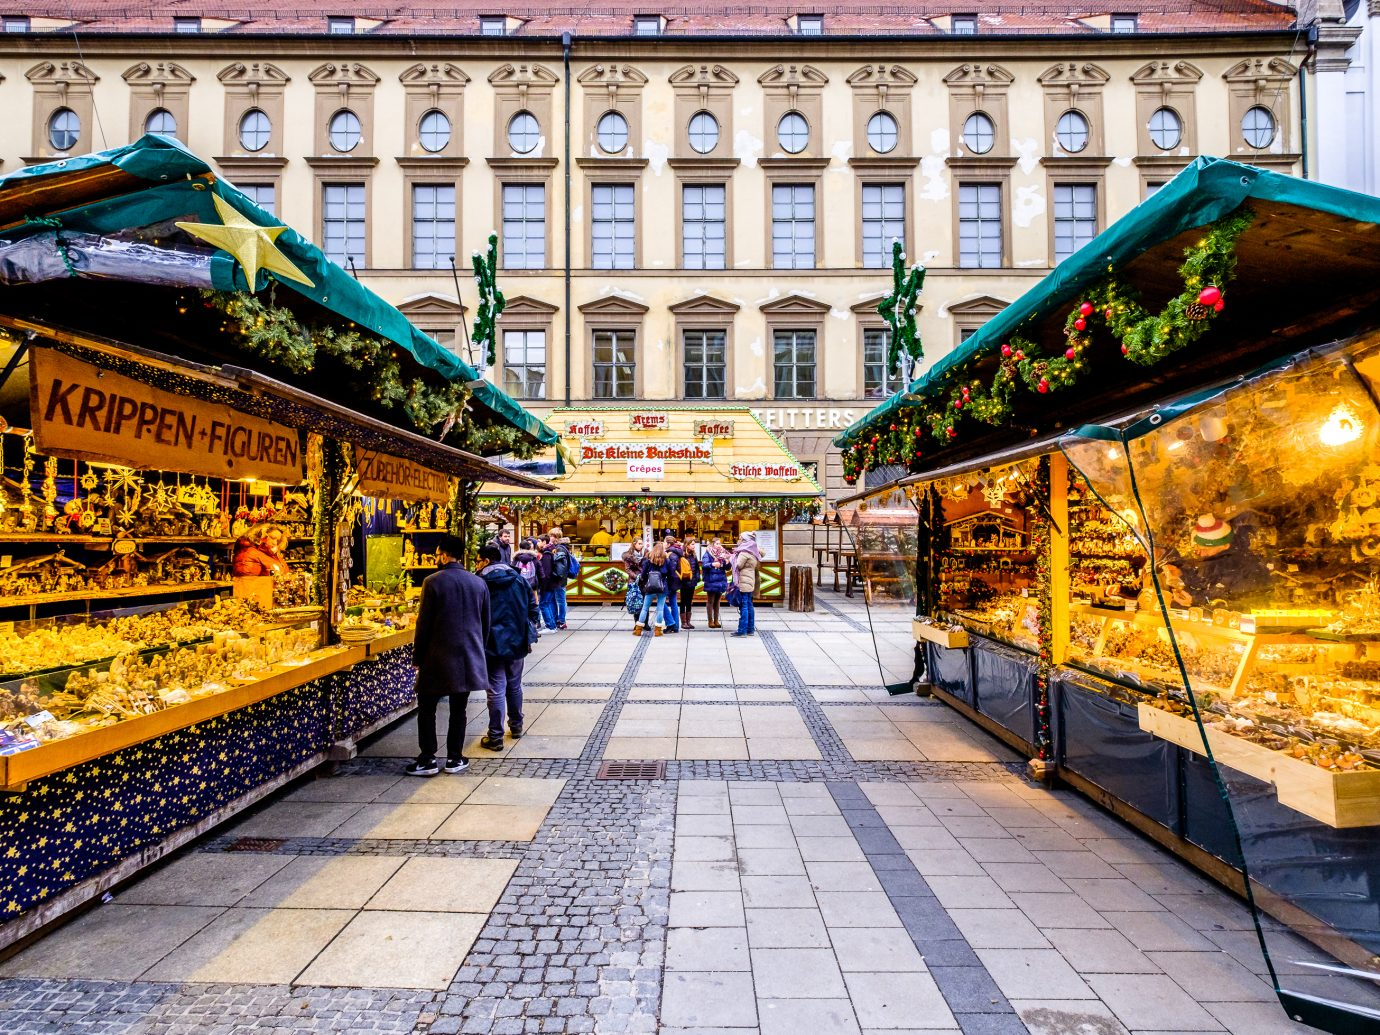 people and sales booth at the christmas market in Munich, Germany. the munich christmas market takes place annually on the marienplatz and the surrounding streets and is famous for its stalls selling arts and crafts. directly on the marienplatz the old city hall forms the background.